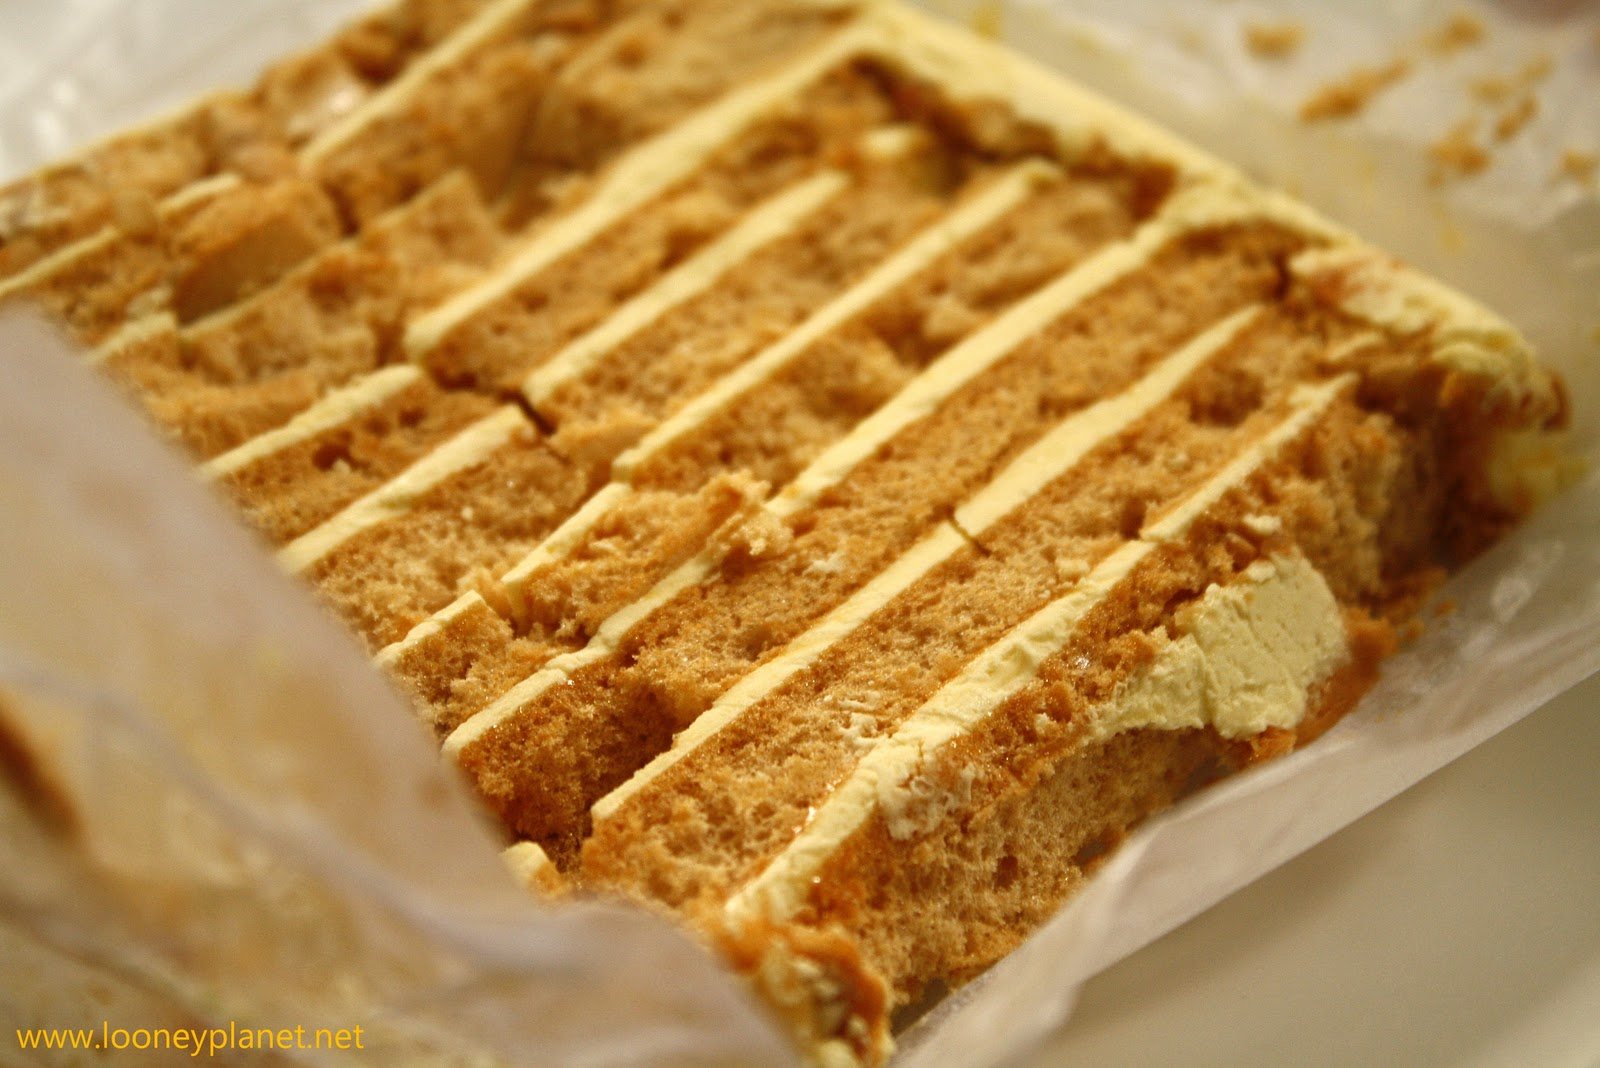 ... : caffeine fix and a slice of heaven in Sans Rival Dumaguete